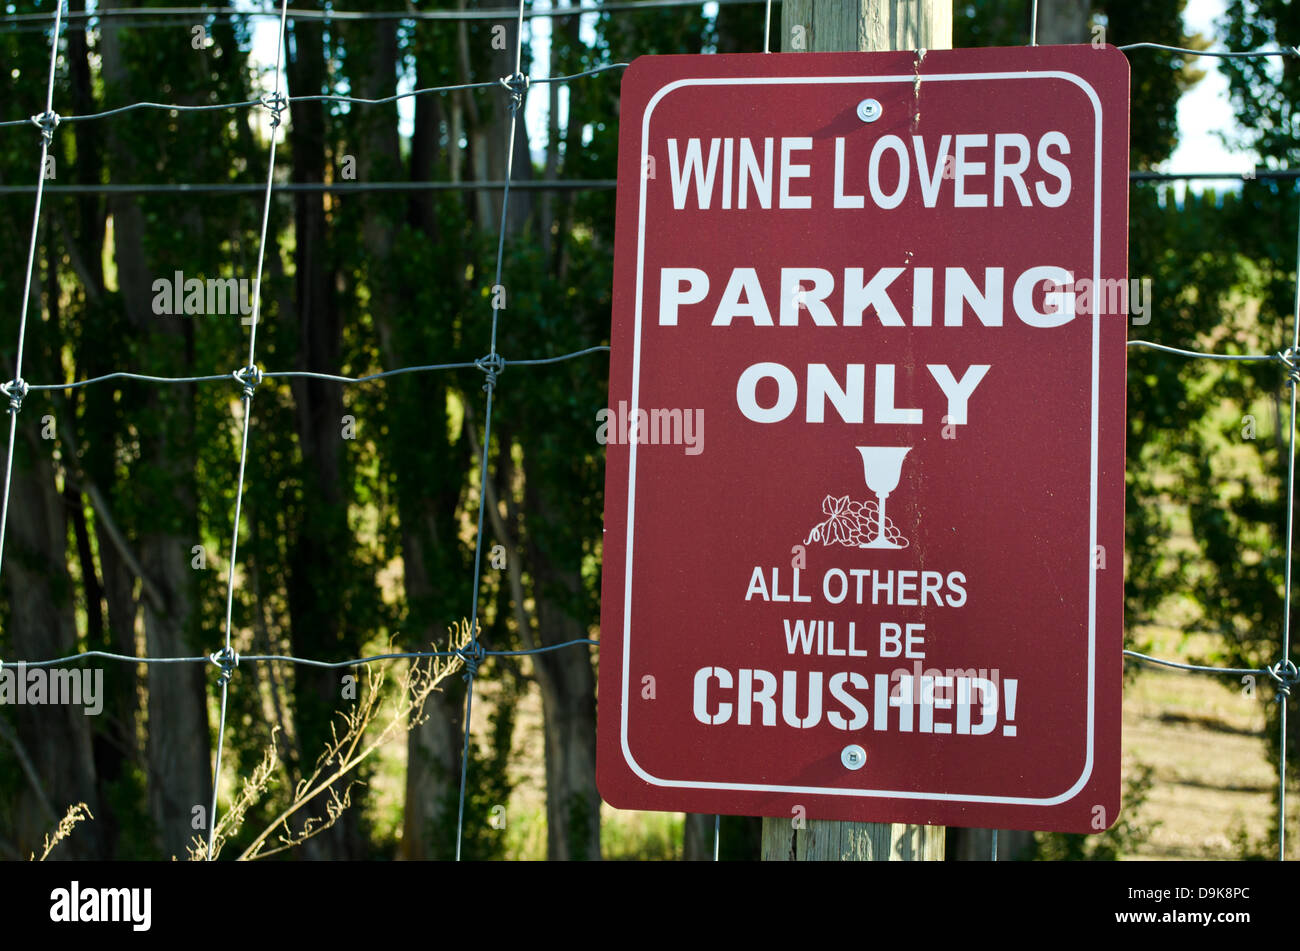 "Funny winery parking lot sign in the Okanagan area of British Columbia.  ""Wine Lovers Parking Only - All Others Stock Photo"